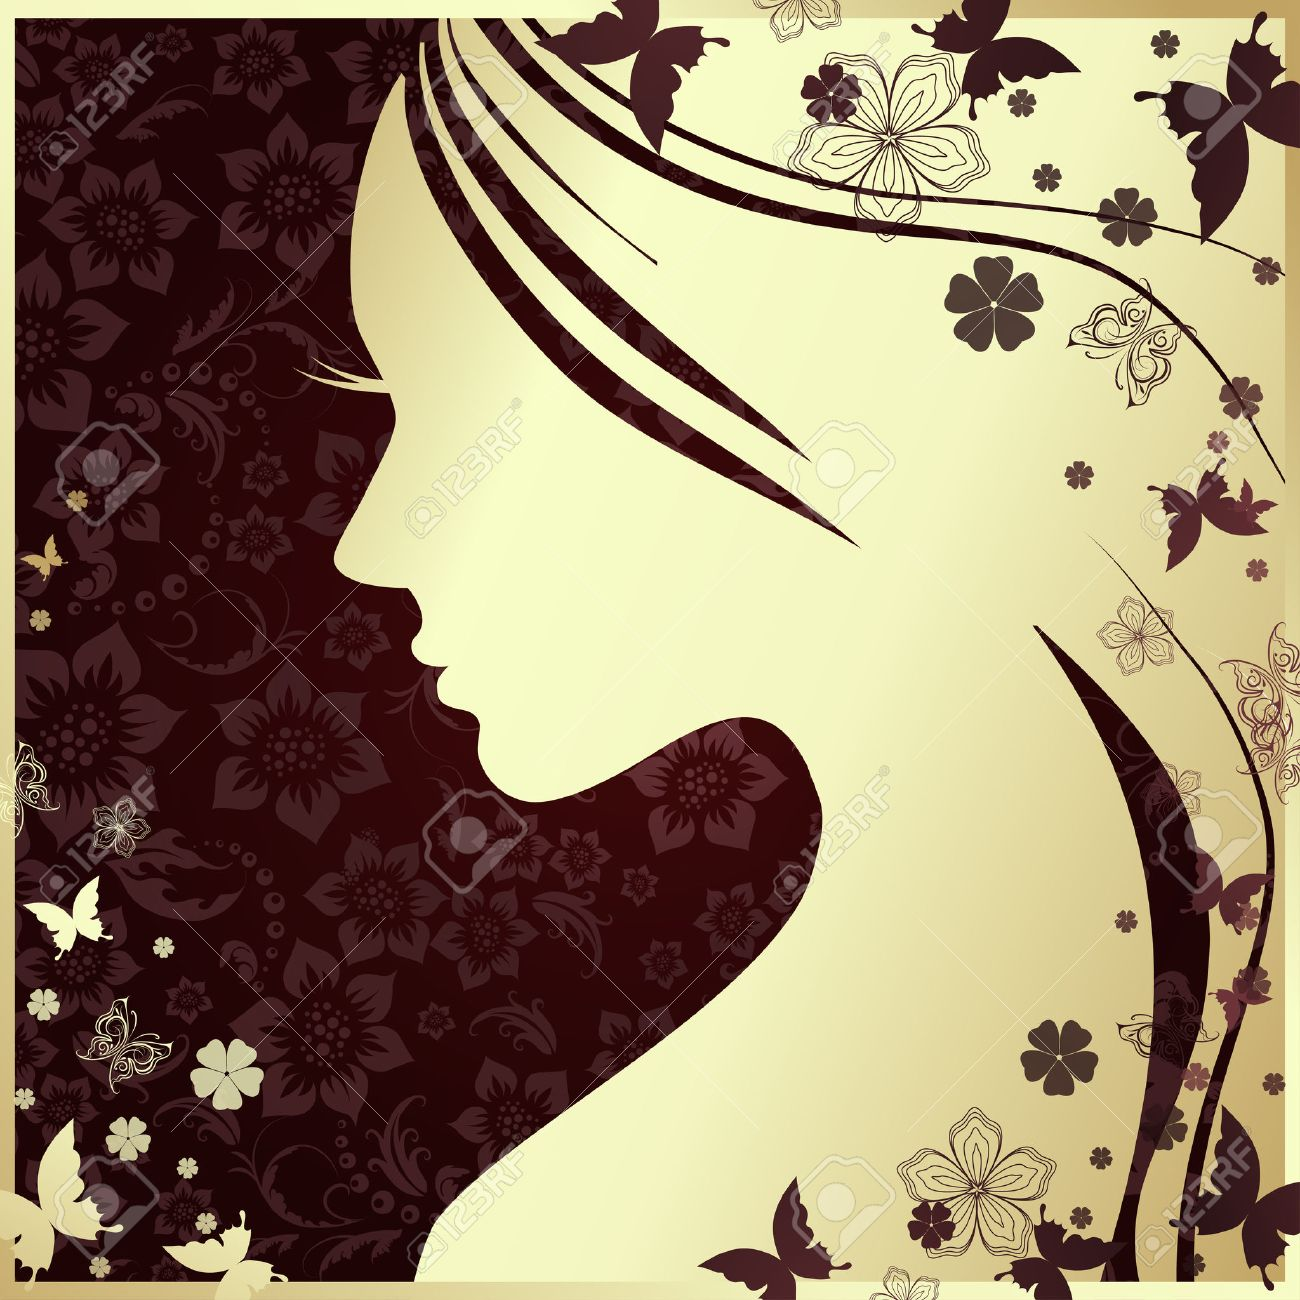 Vector illustration of Woman's silhouette with beautiful hair - 37349684